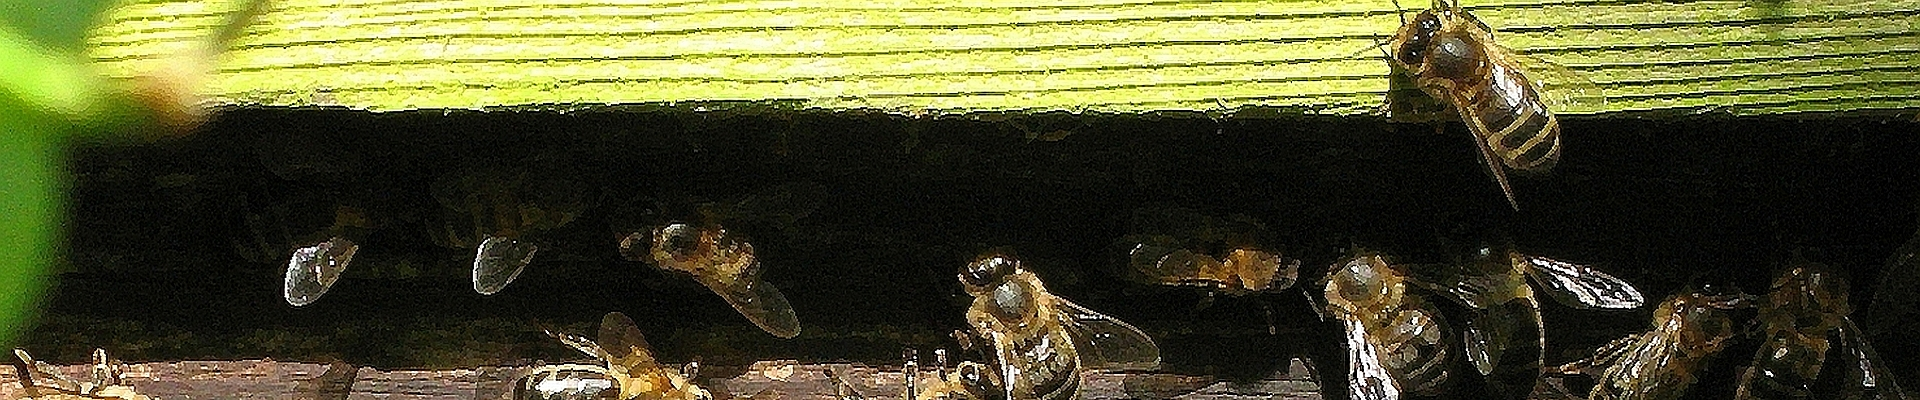 Busy bees by their hive